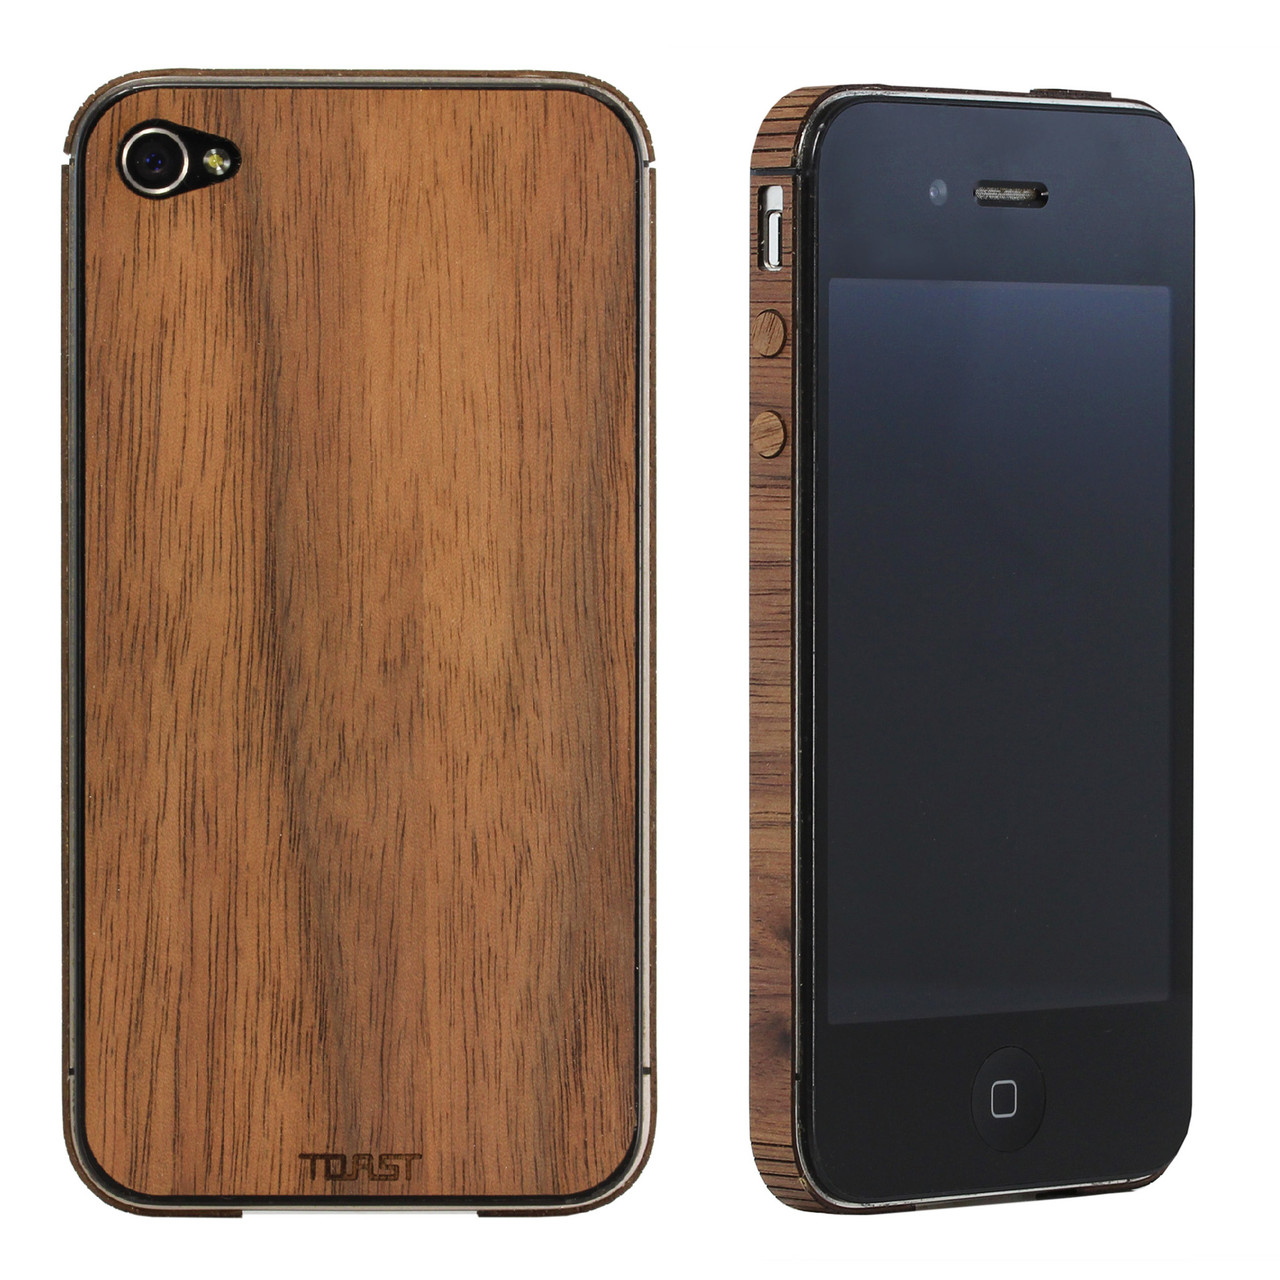 watch 7c075 d3377 iPhone 5s / 5C wood cover